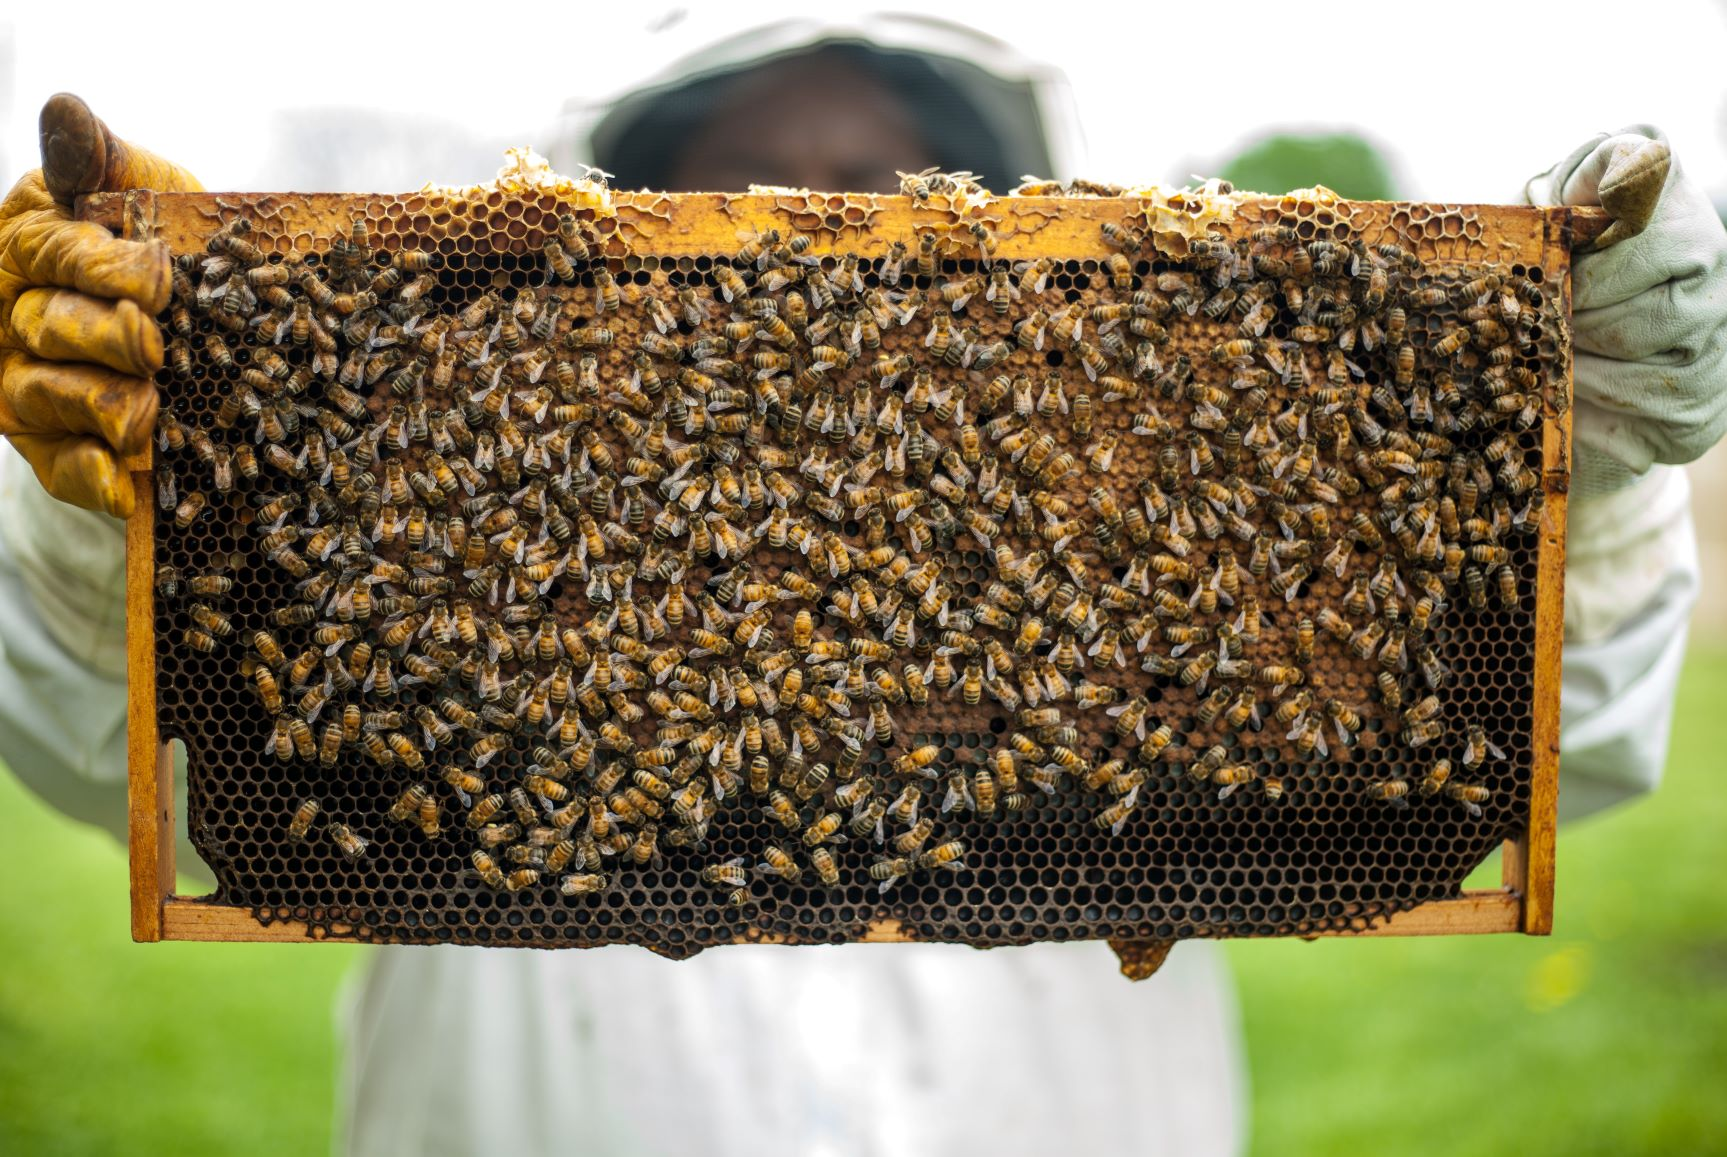 A beekeeper holds up bees